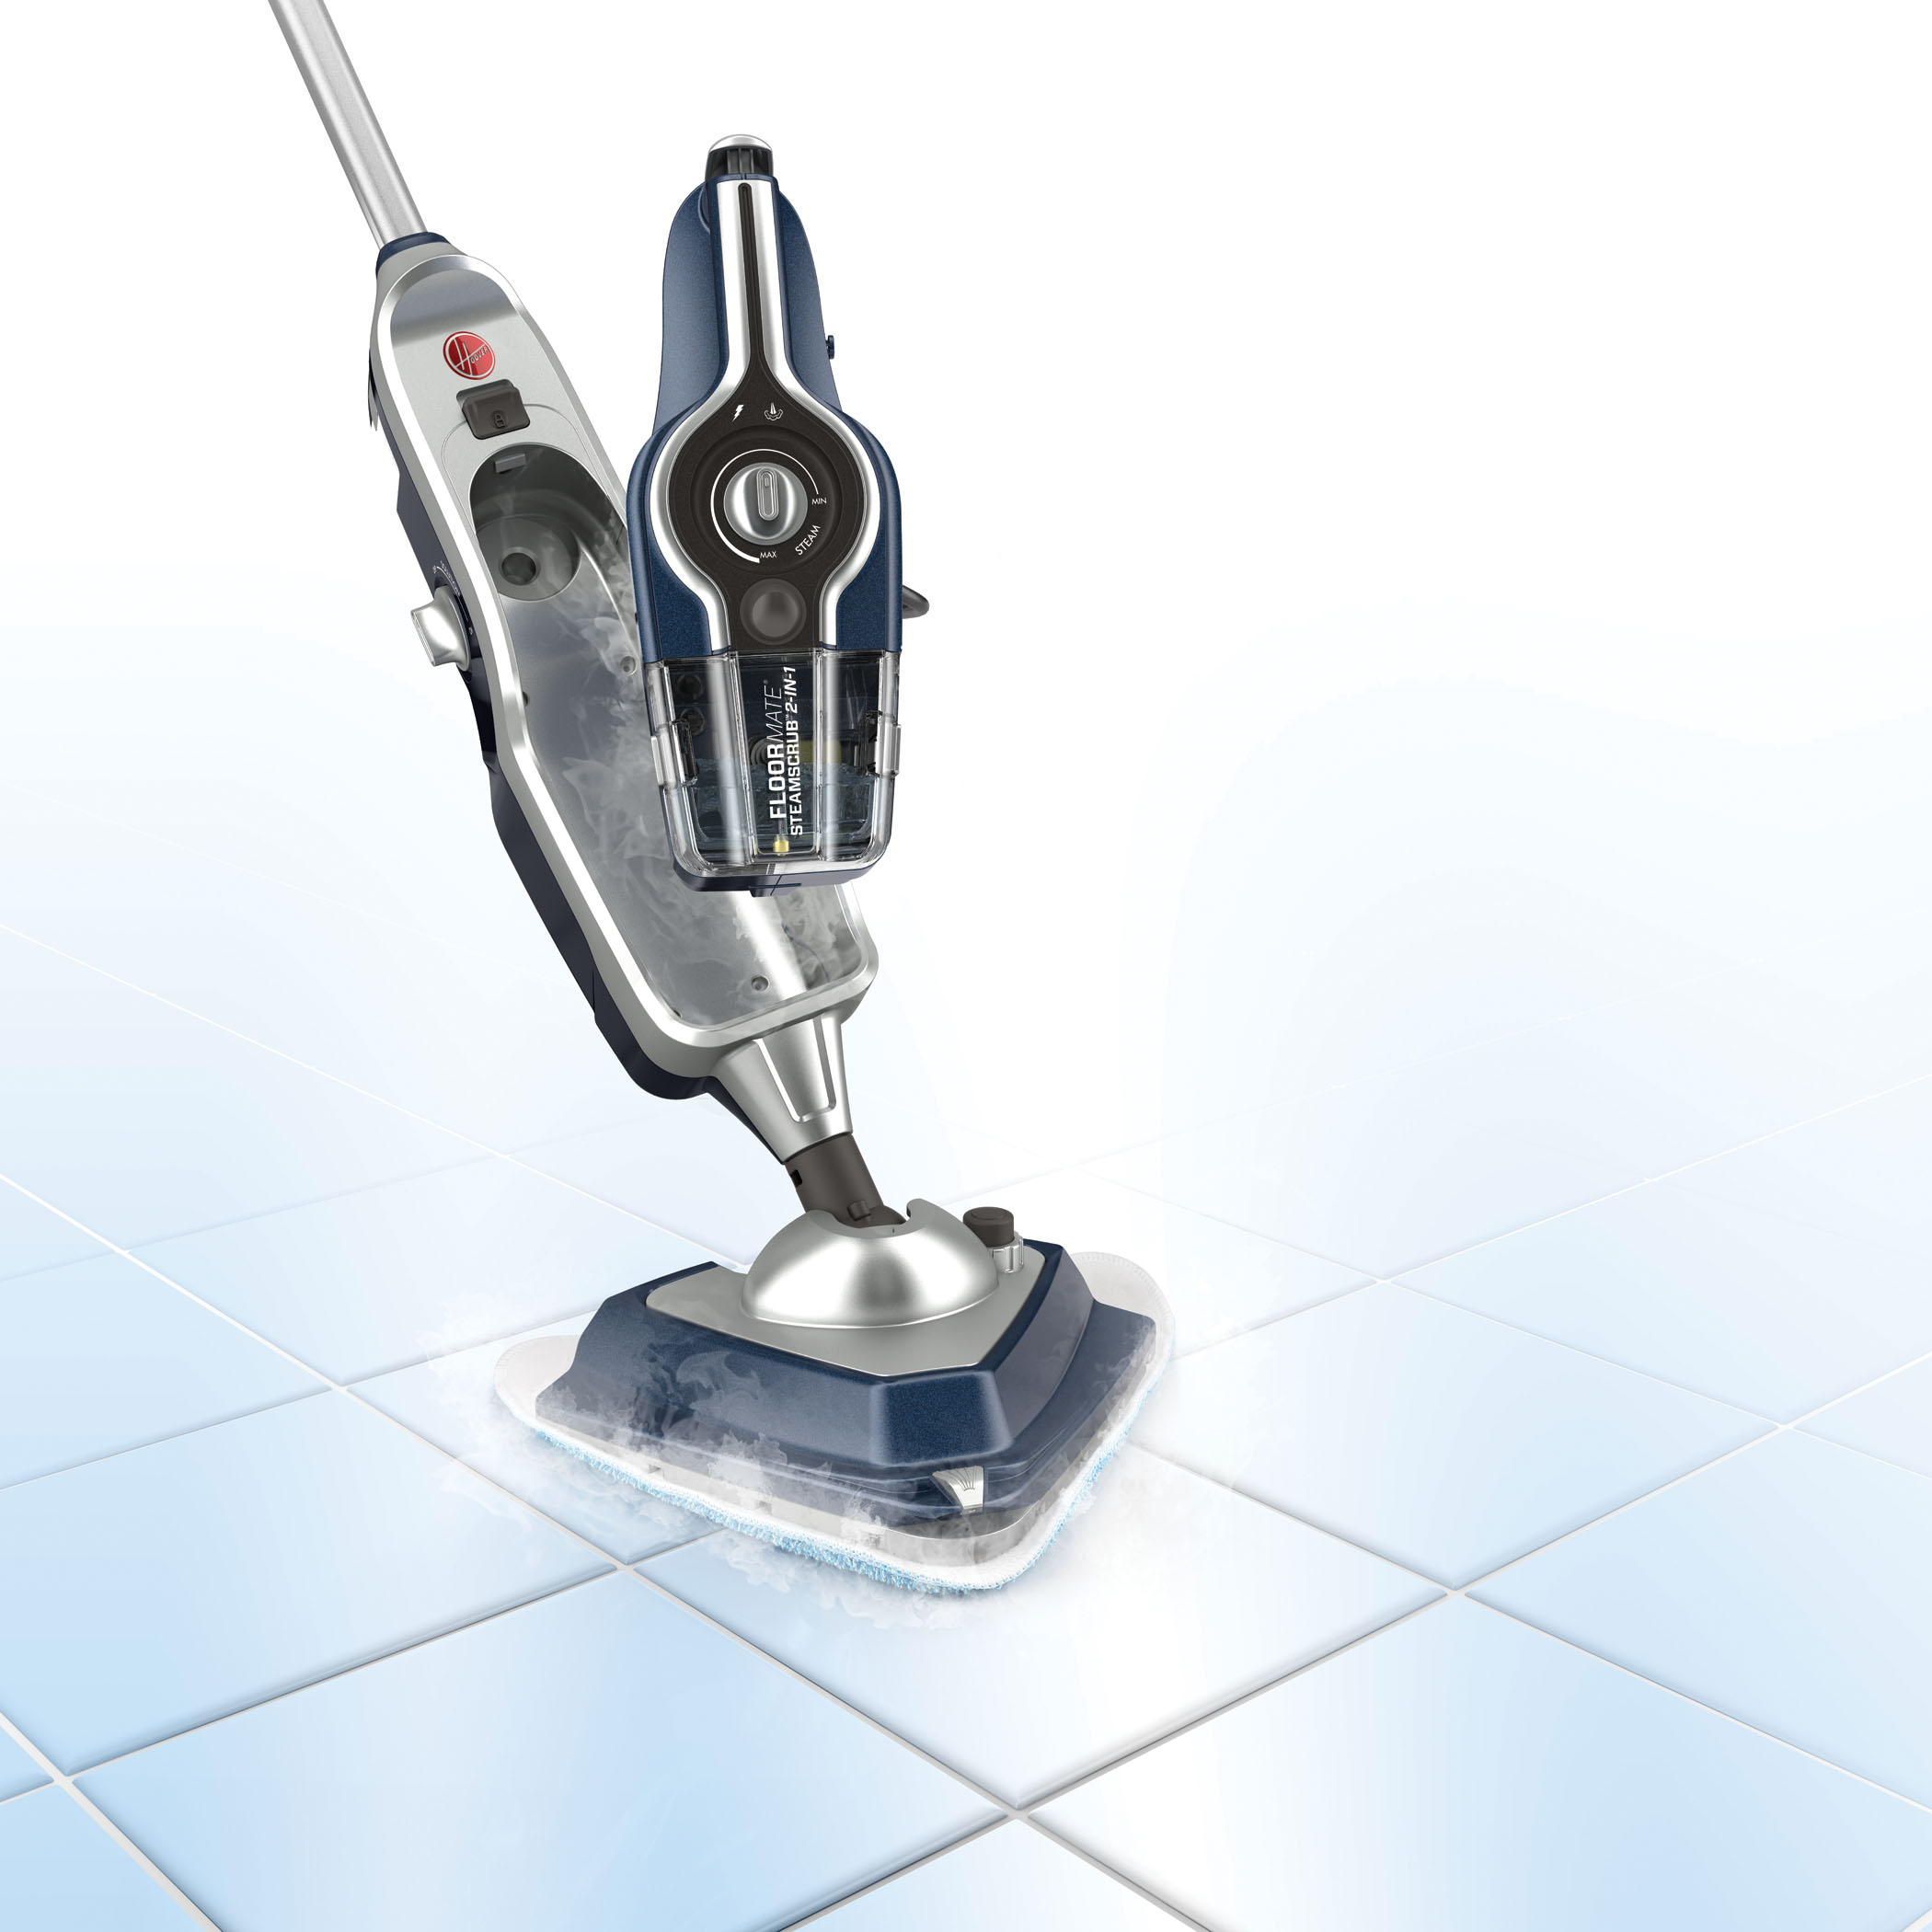 Rethink Your Cleaning Using The Powerofsteam